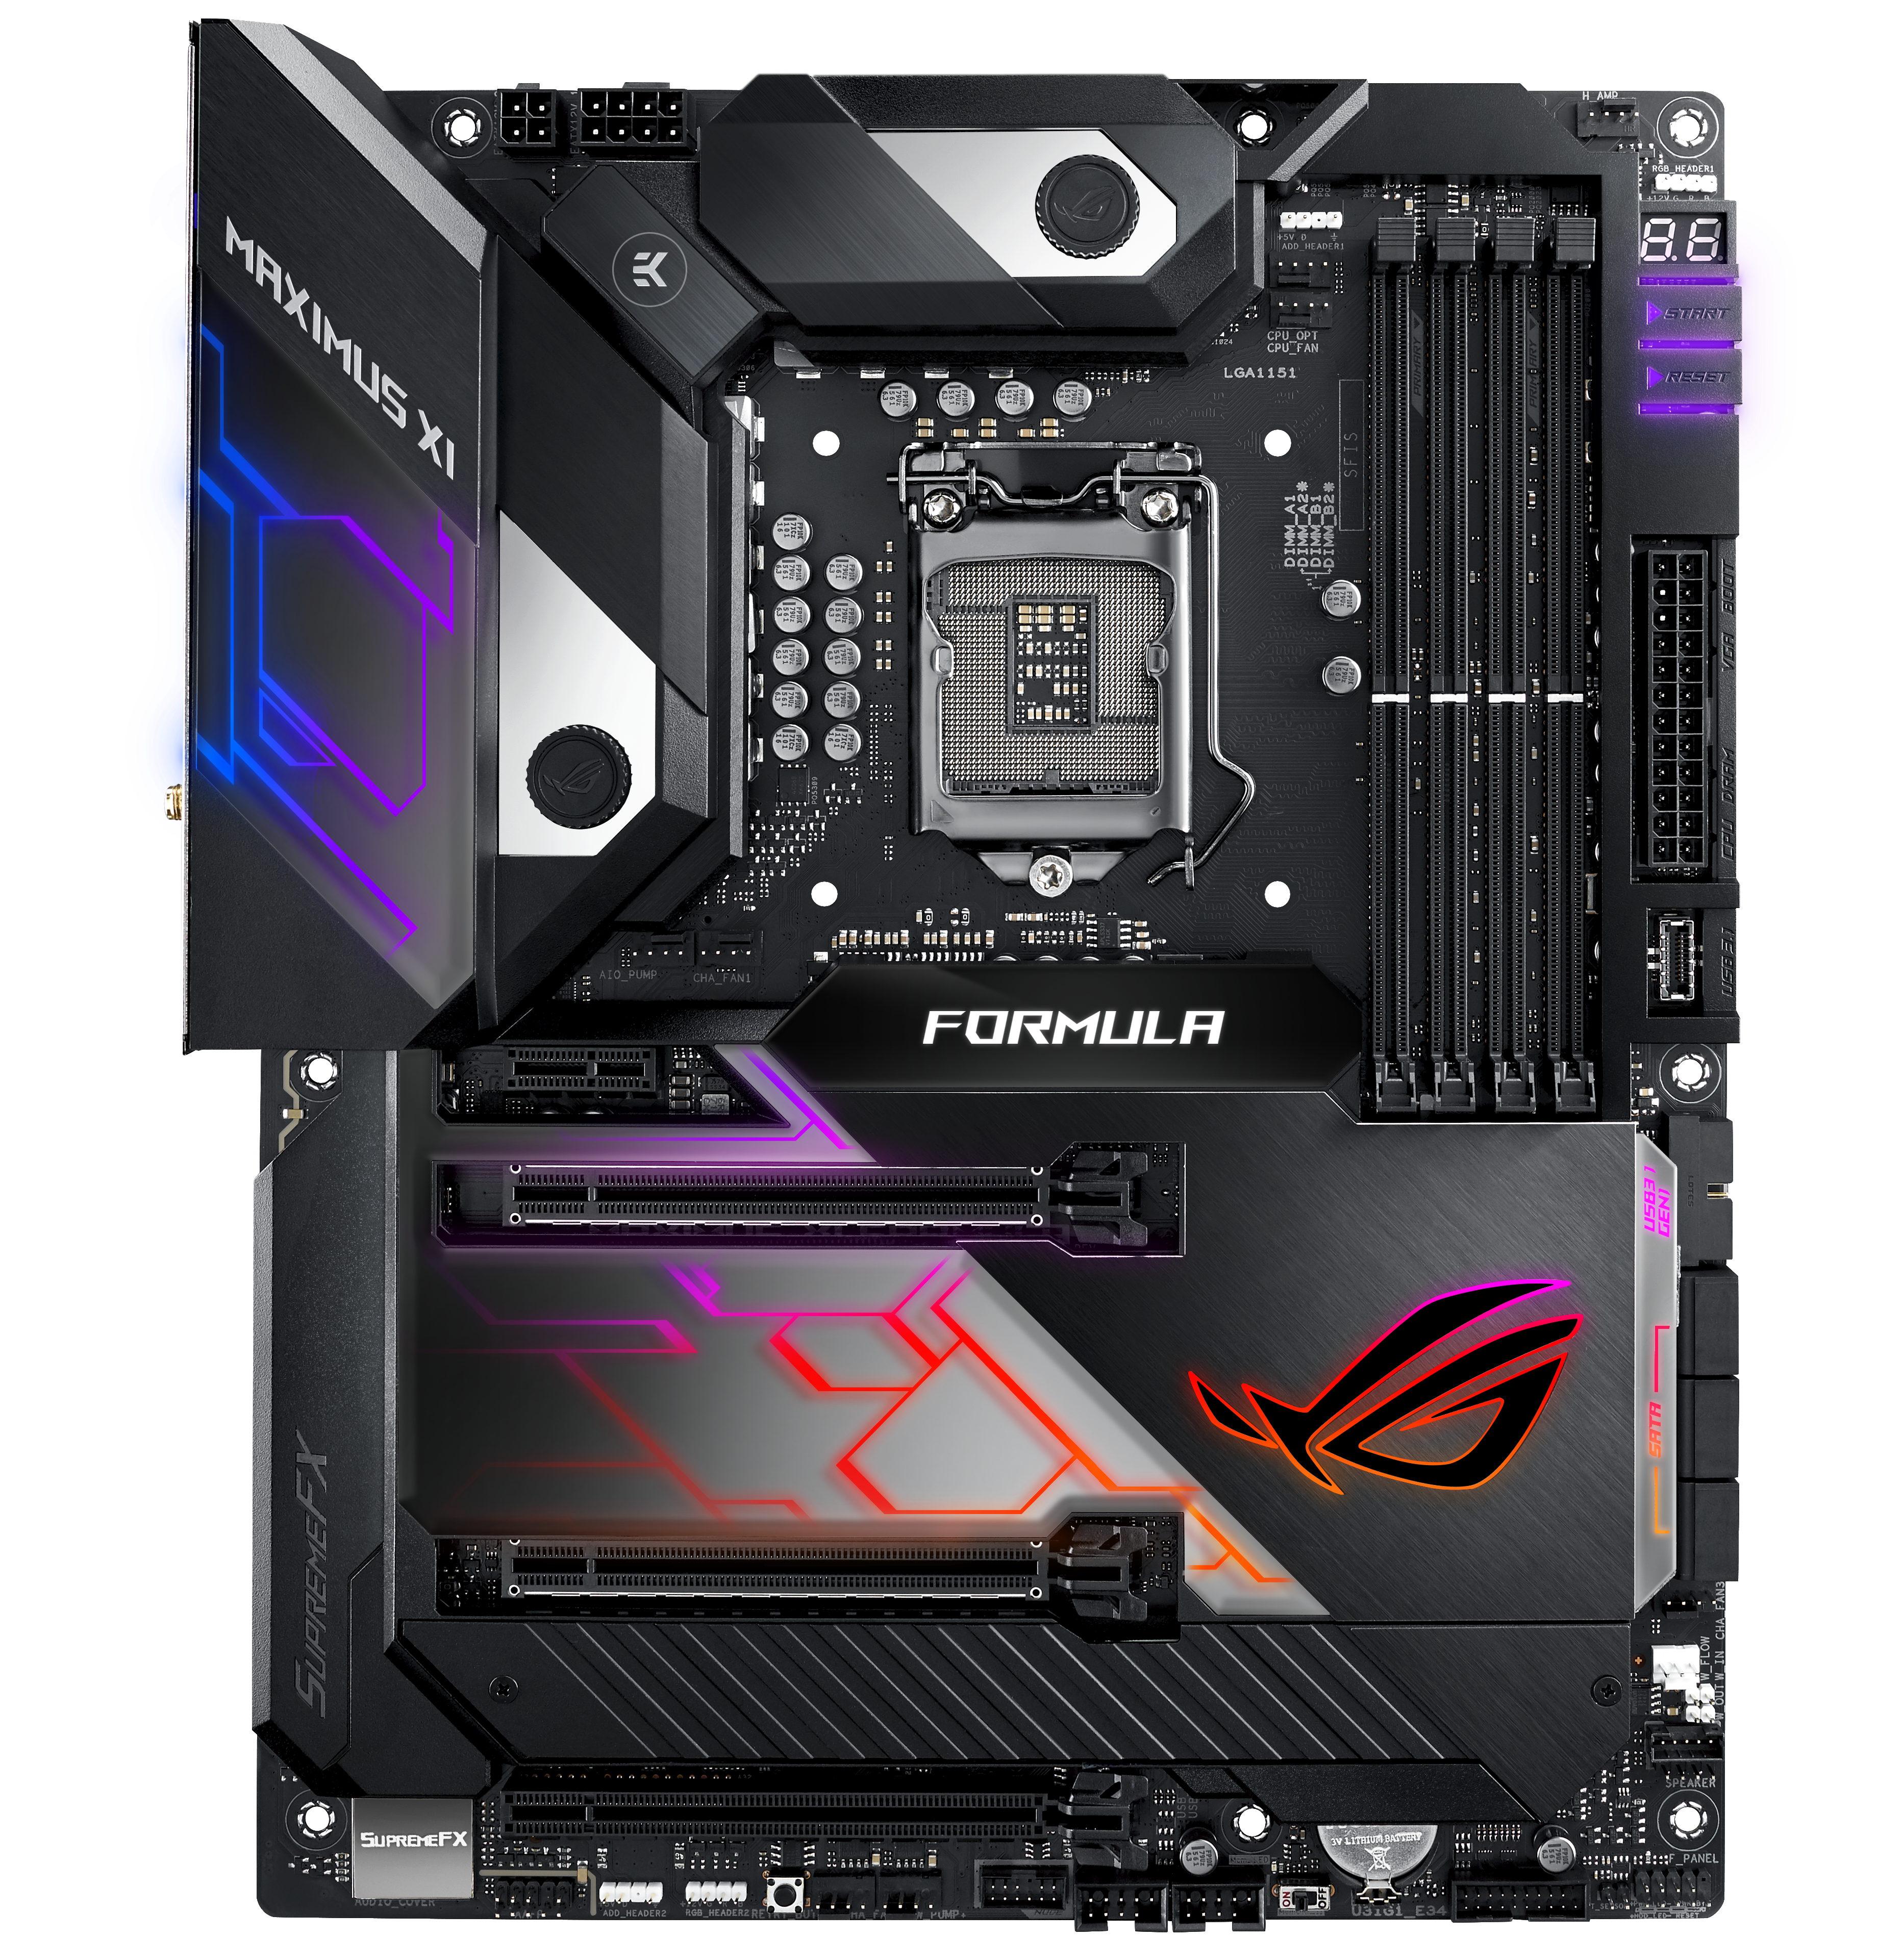 ASUS ROG Maximus XI Formula - Intel Z390 Motherboard Overview: 50+